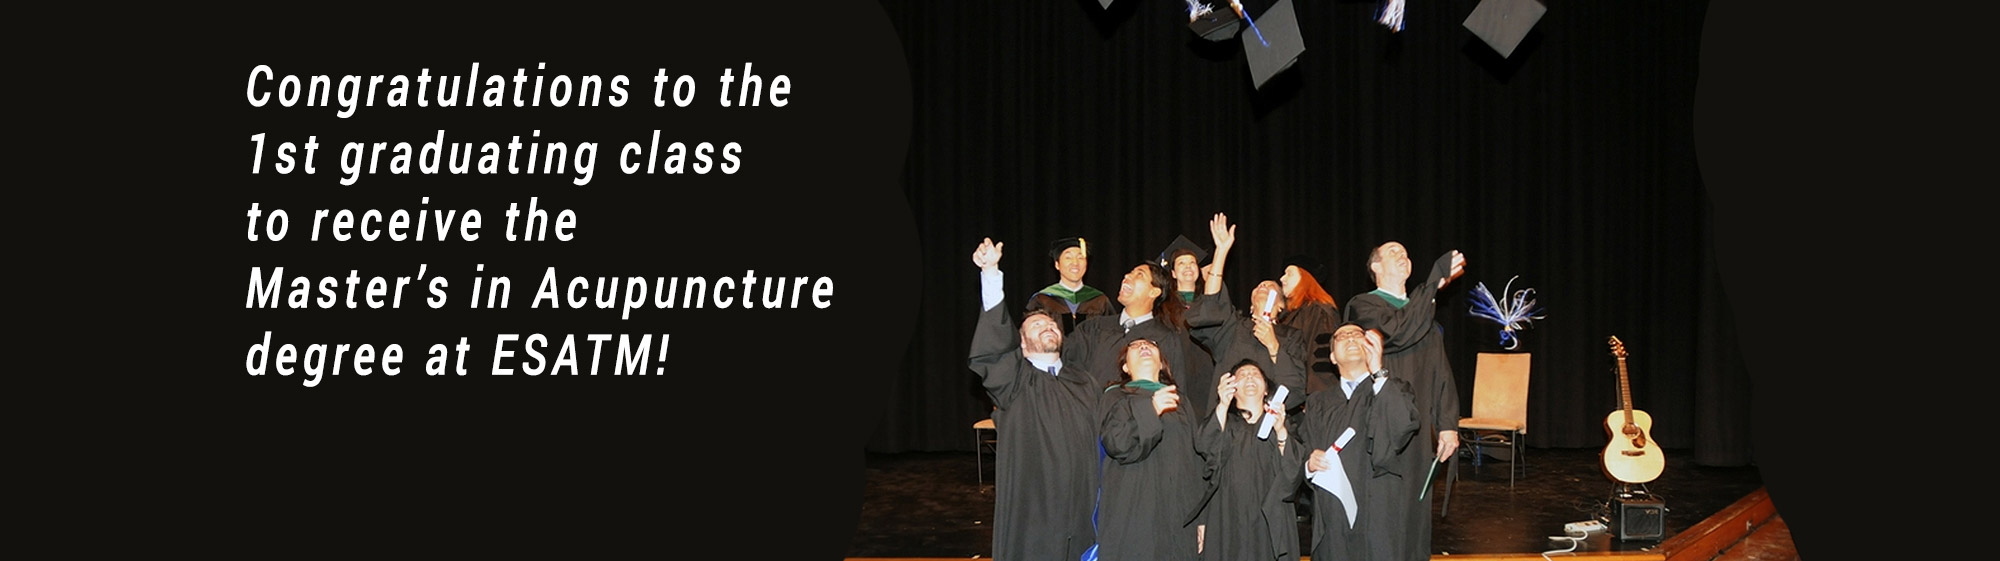 Congratulations to the 1st graduating class to receive the Master�s in Acupuncture degree at ESATM!